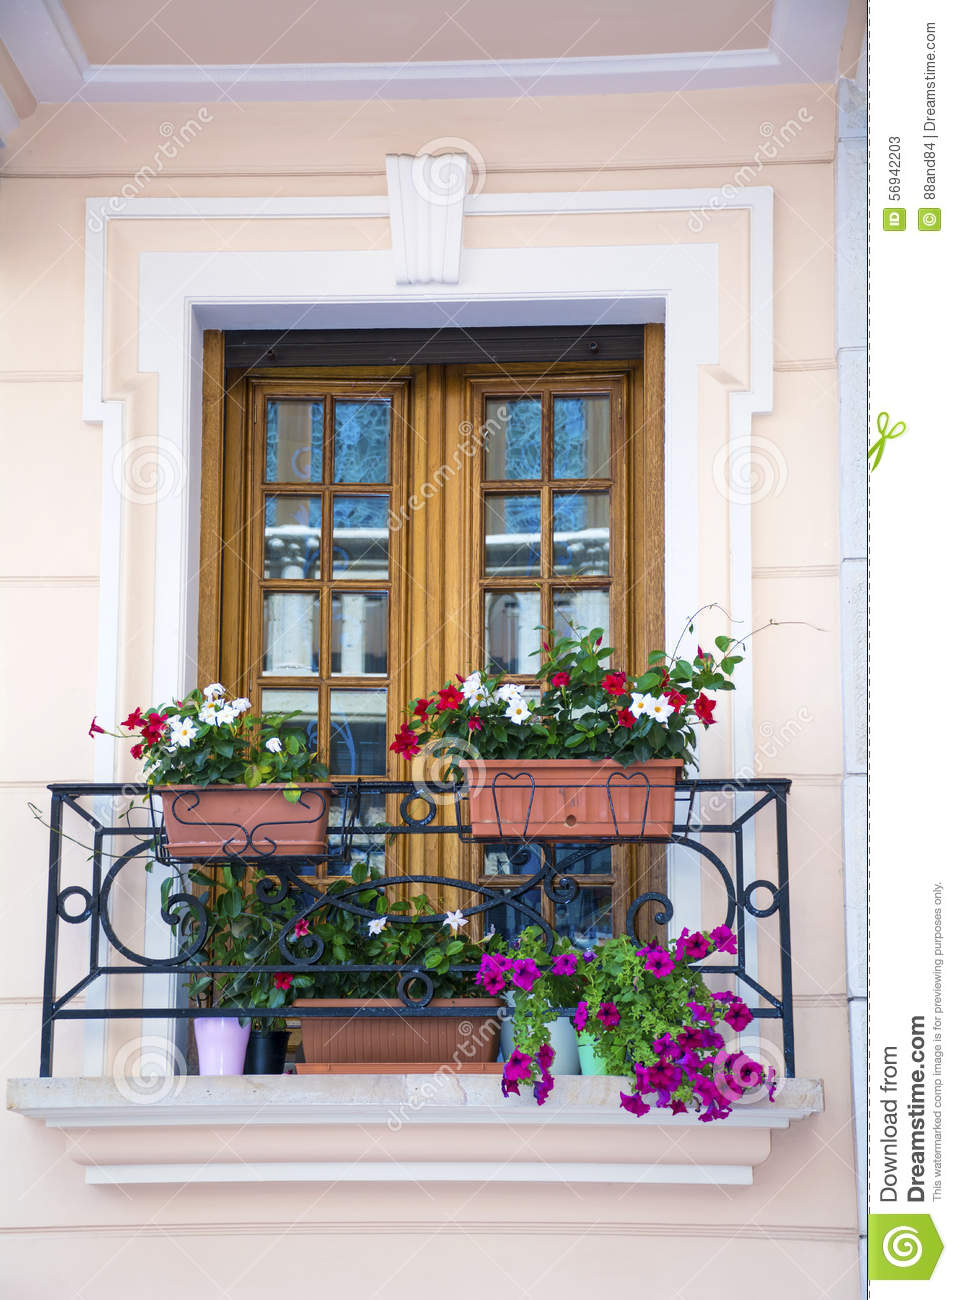 Italian balcony with pot flowers stock image image 56942203 for Italian balcony